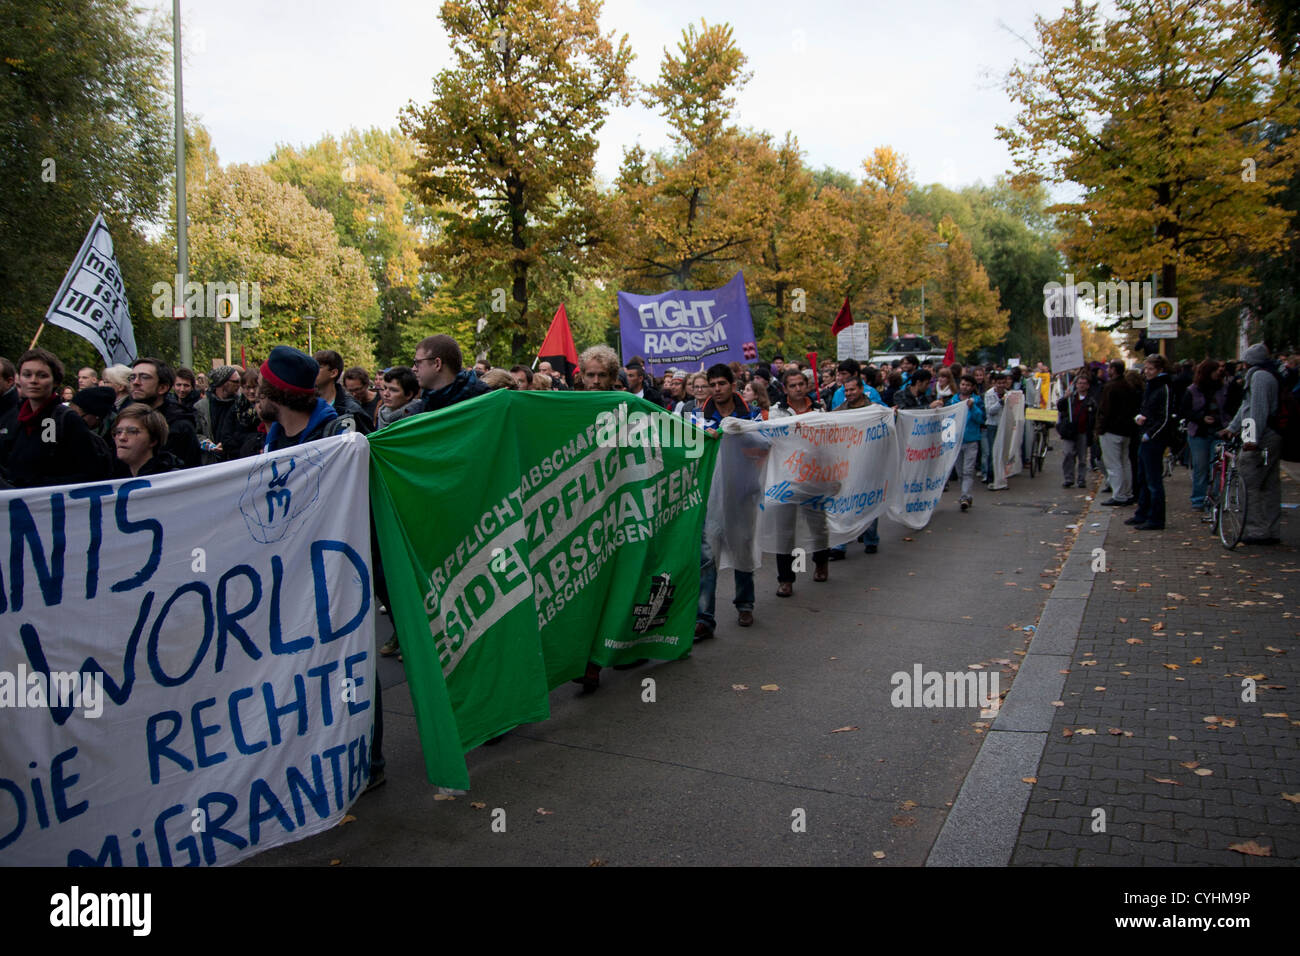 Saturday, 13 Oct. 2012. Berlin, Germany. Refugee protest march. Refugees protest against deportations and residential - Stock Image